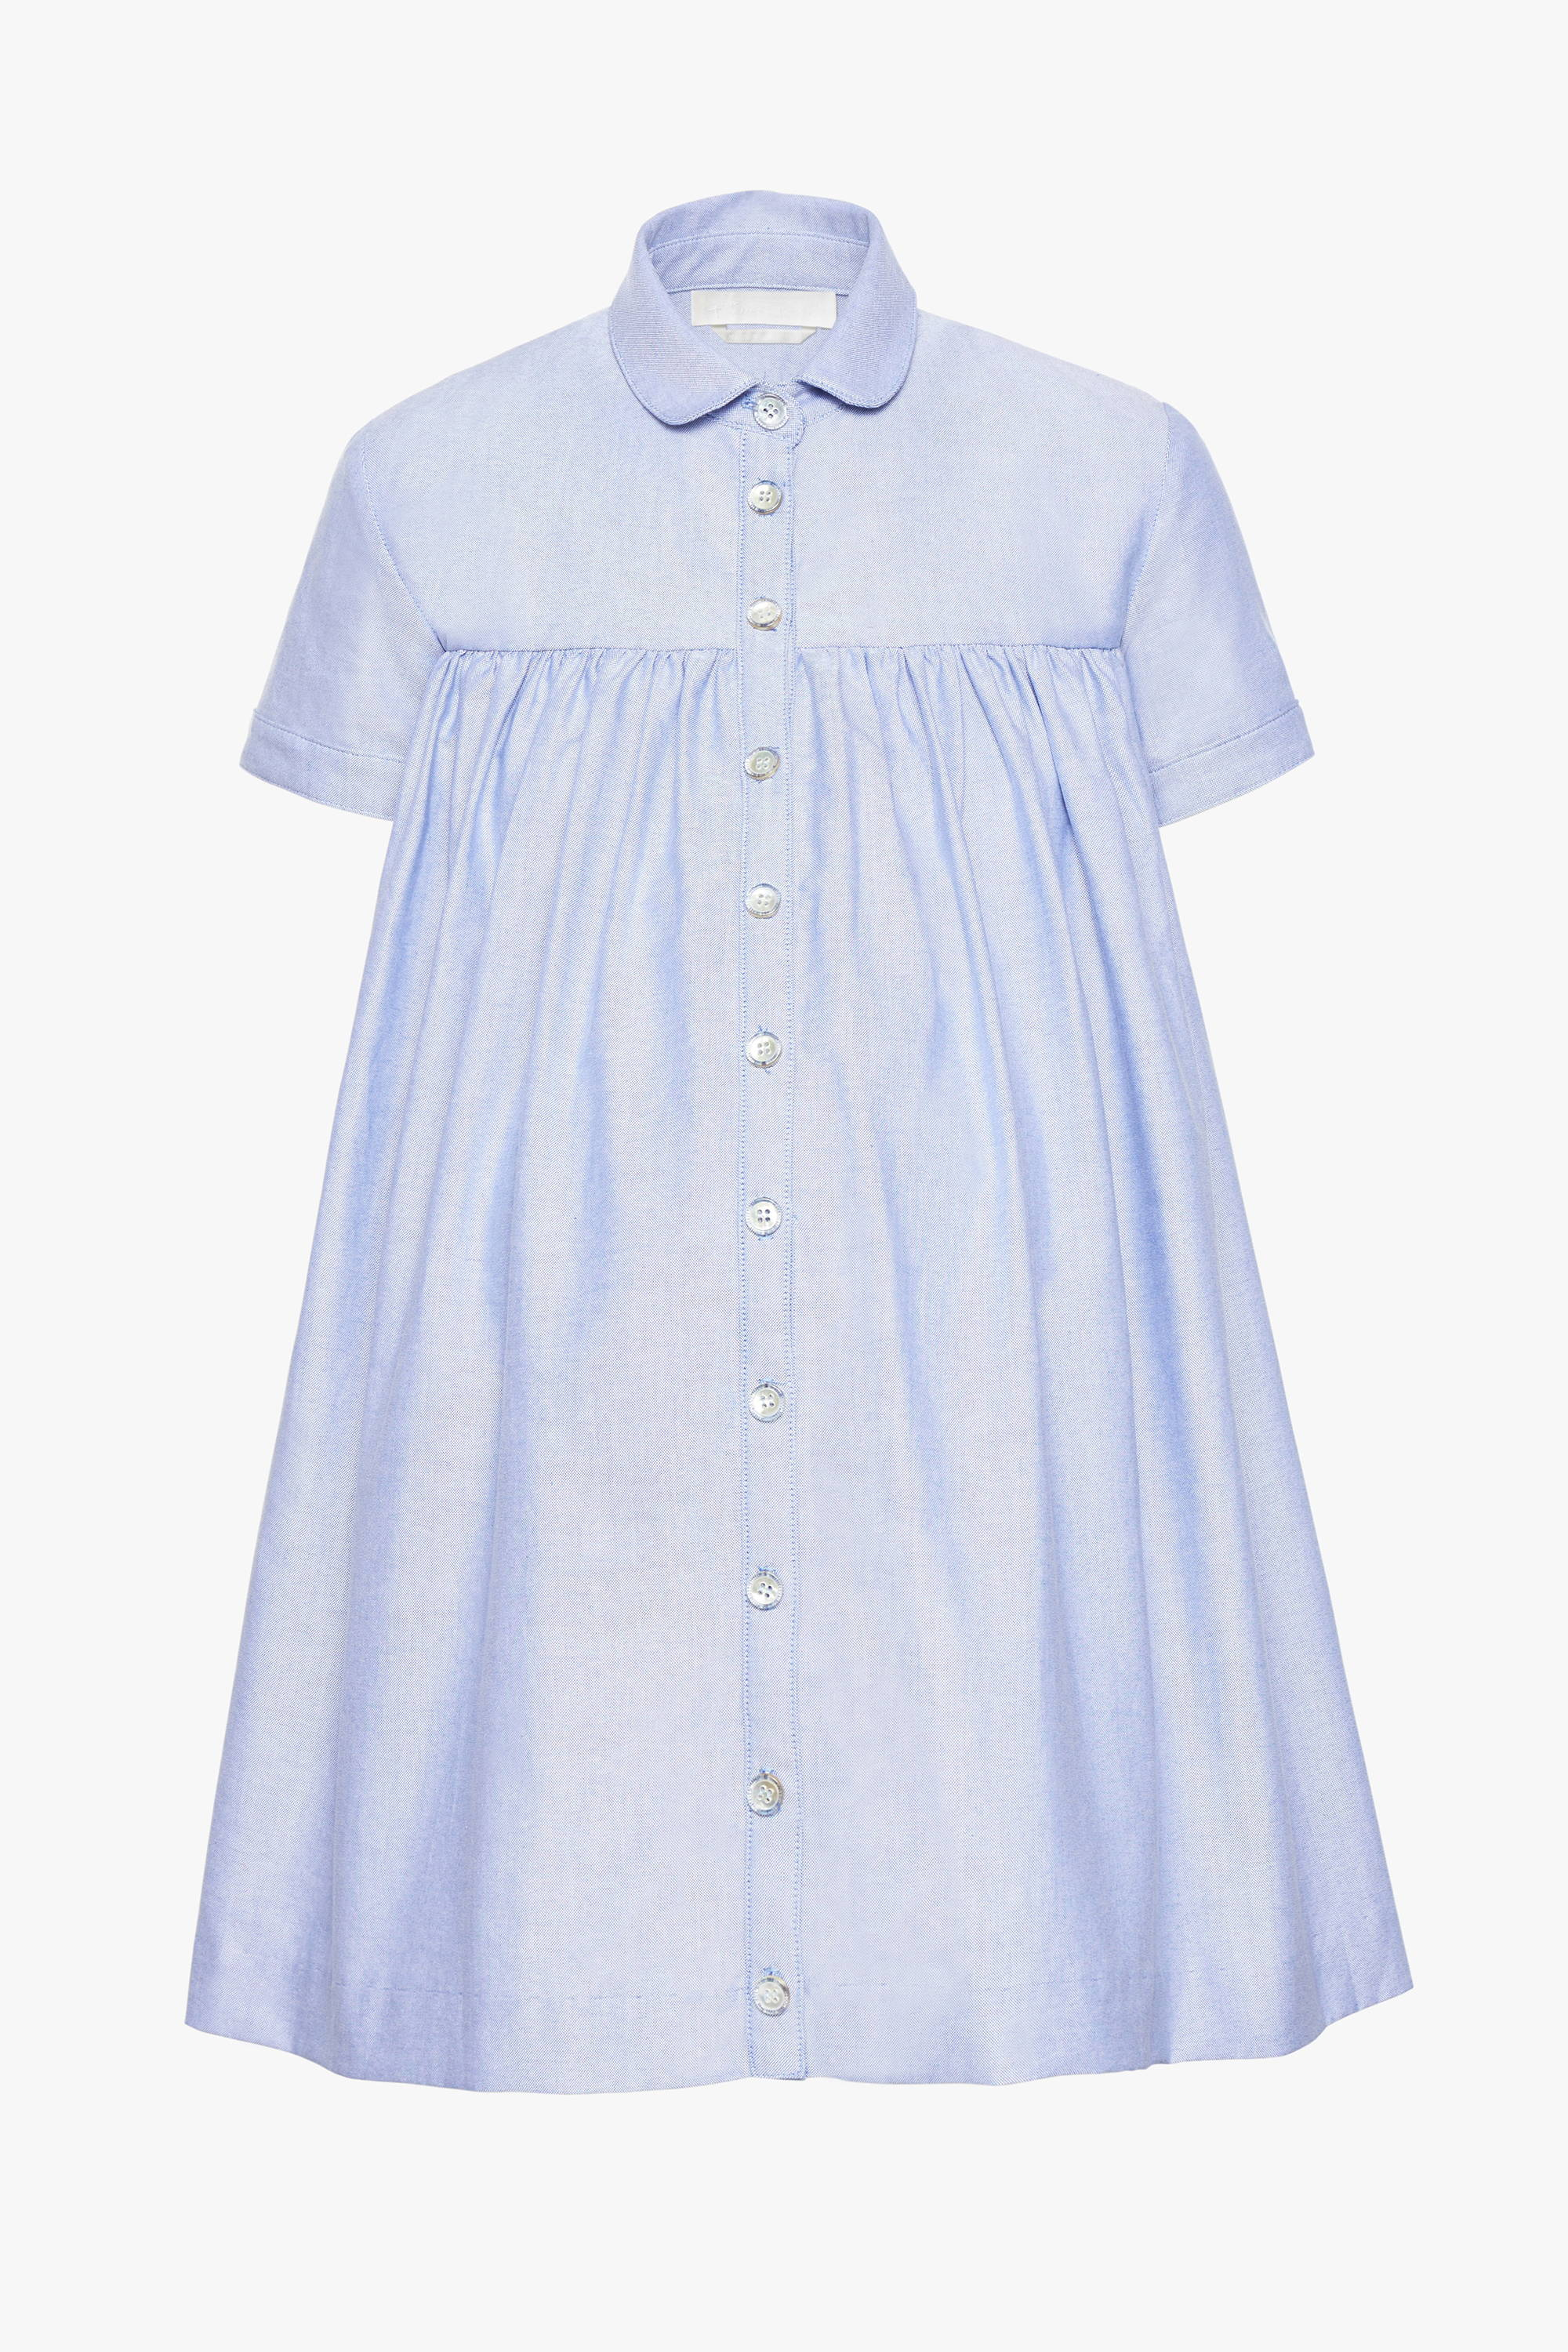 The maternity friendly Melrose dress in blue poplin